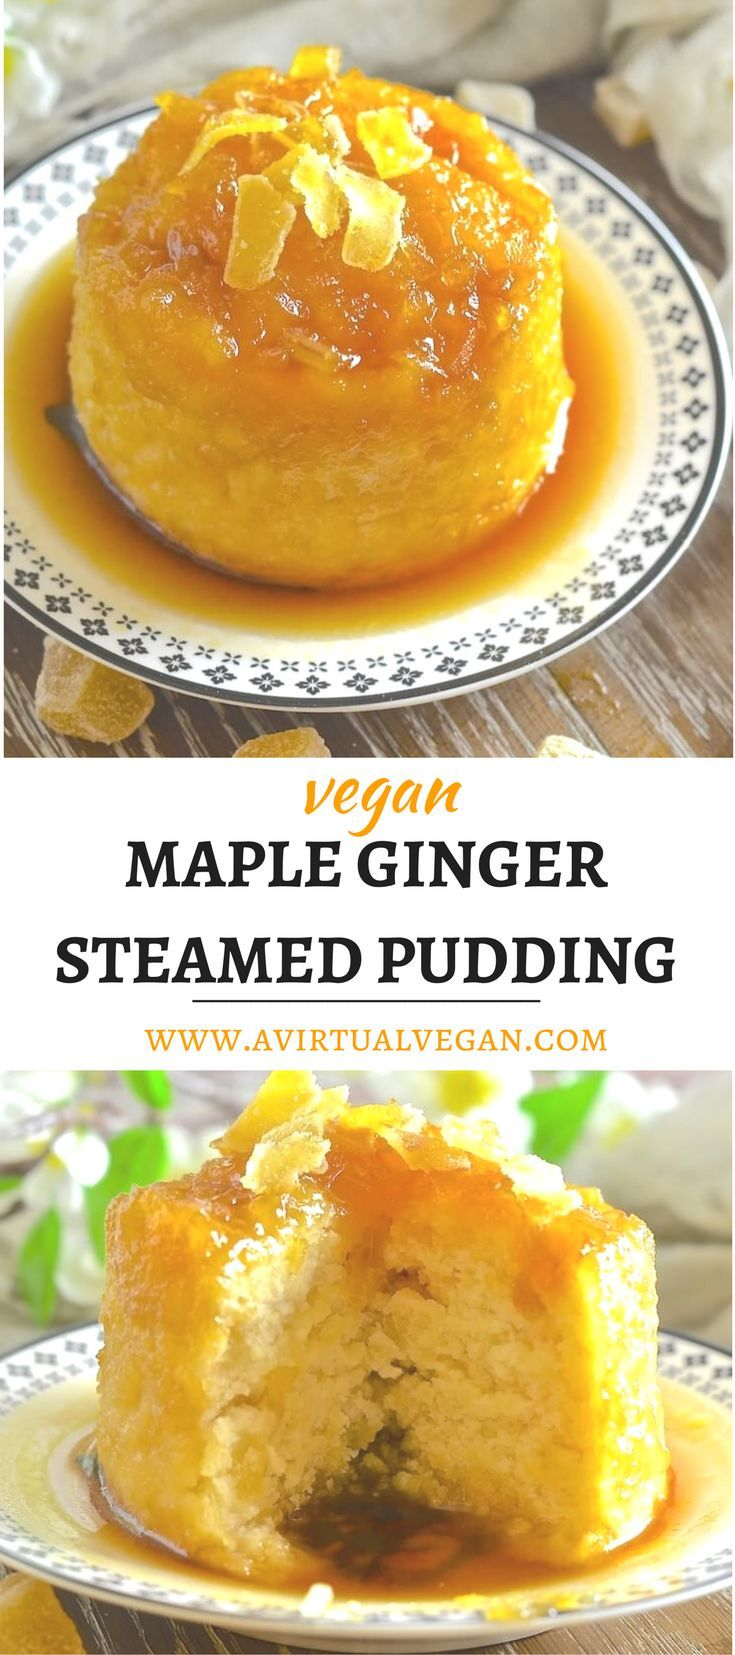 Wonderfully comforting, beautifully sticky Maple Ginger Steamed Pudding. A dream to eat and so easy to make!  via @avirtualvegan